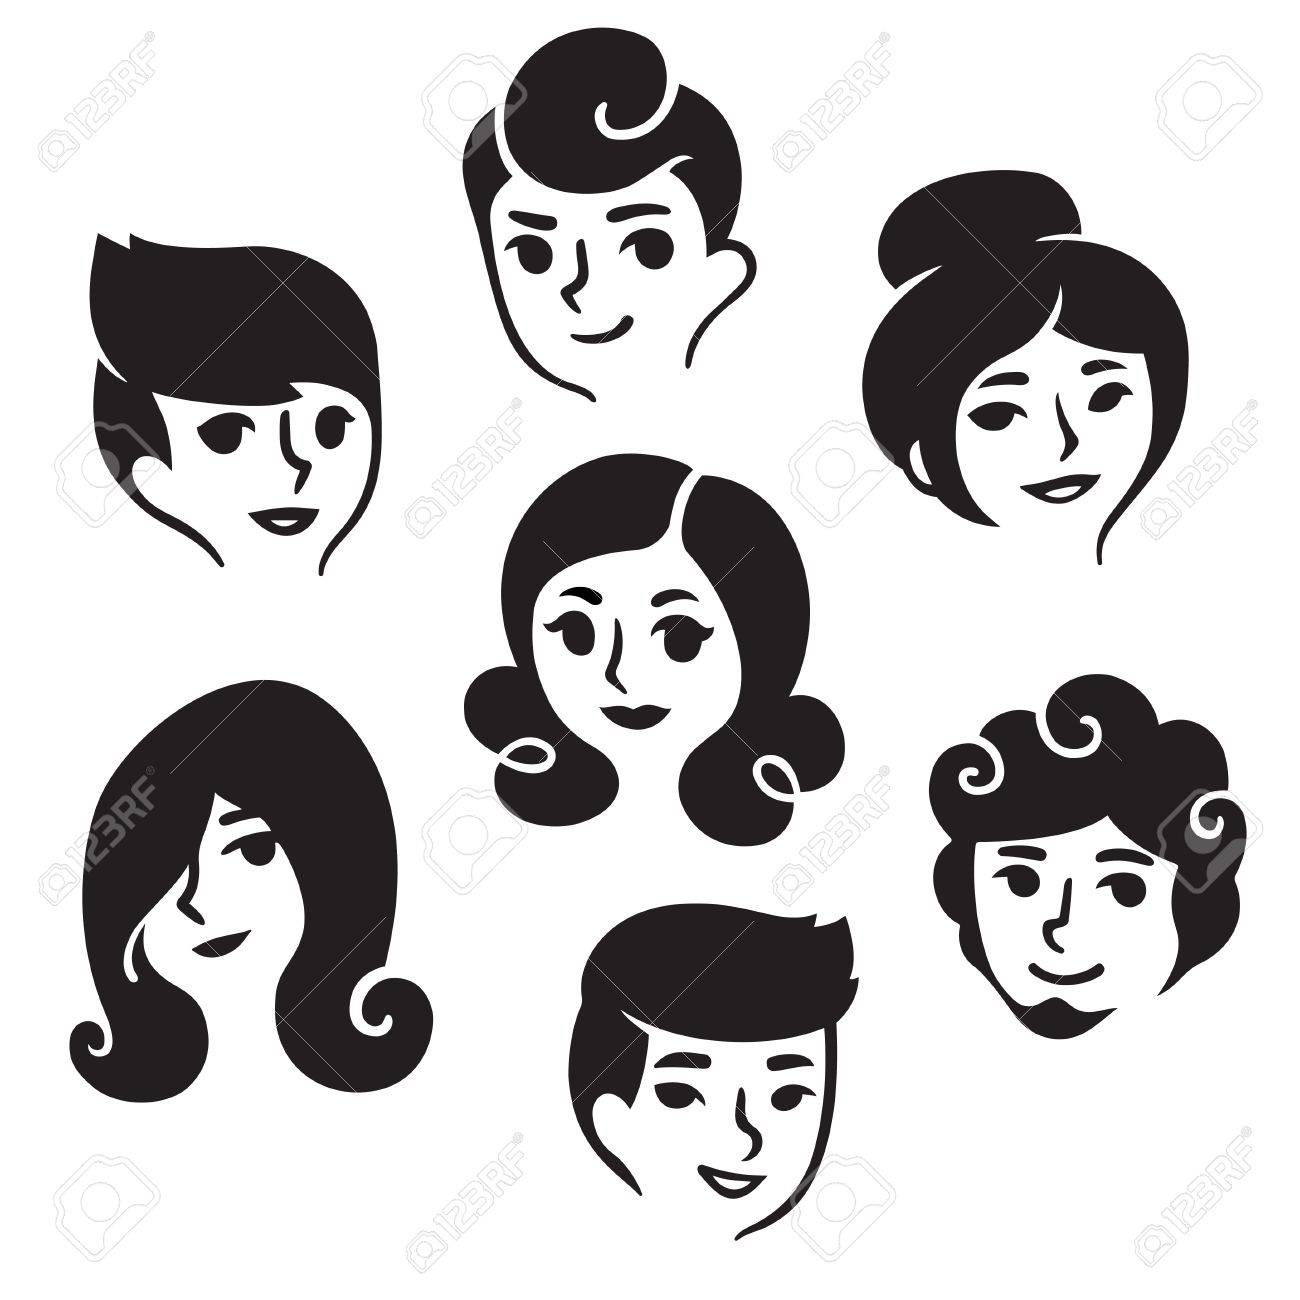 Cartoon Male And Female Faces With Different Hairstyles